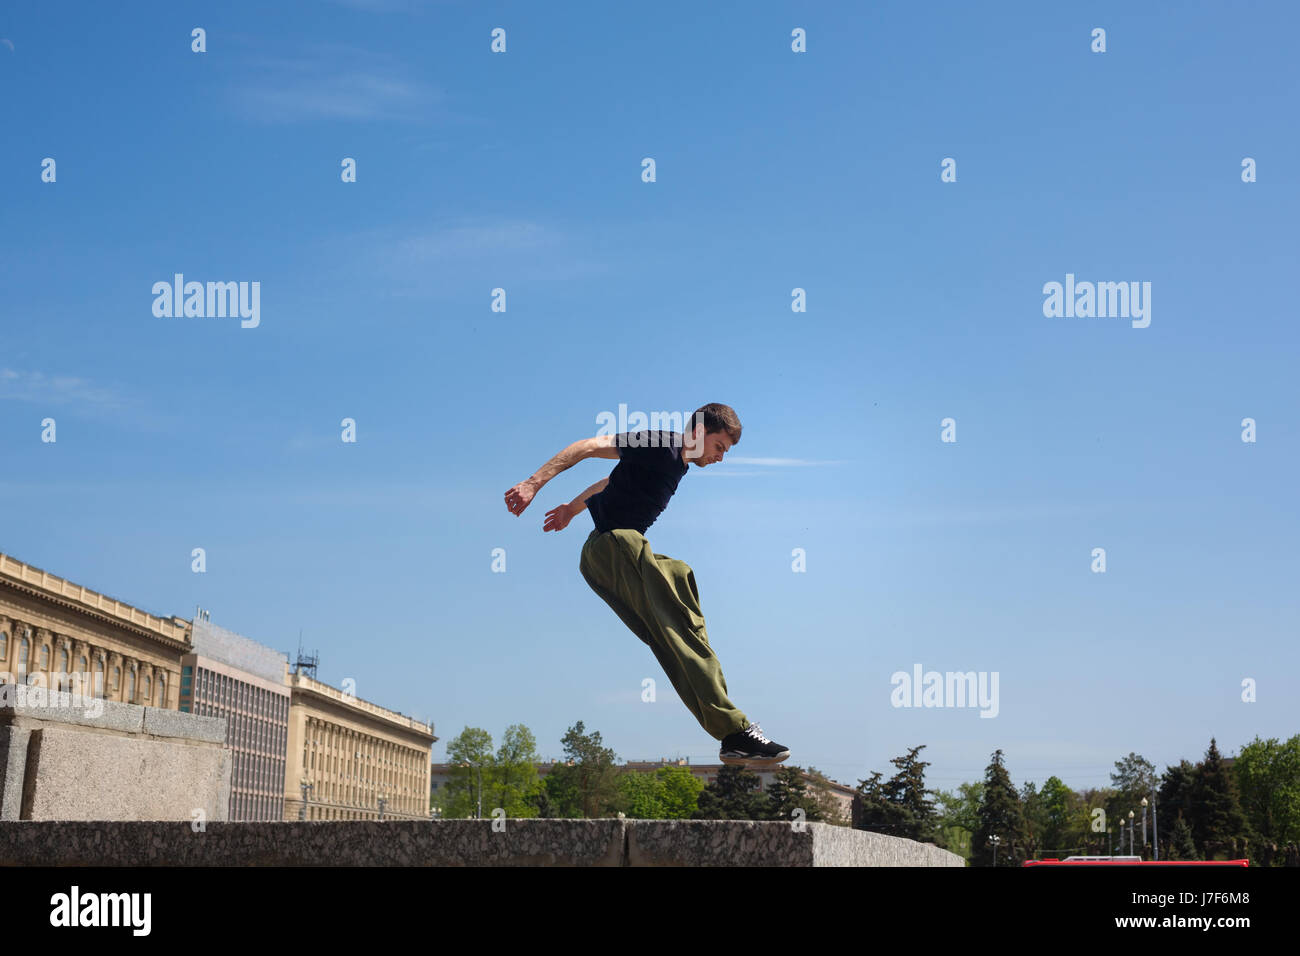 Young man jumps on the wall. Parkour in the urban space. Sports in the city. Sport activity. - Stock Image